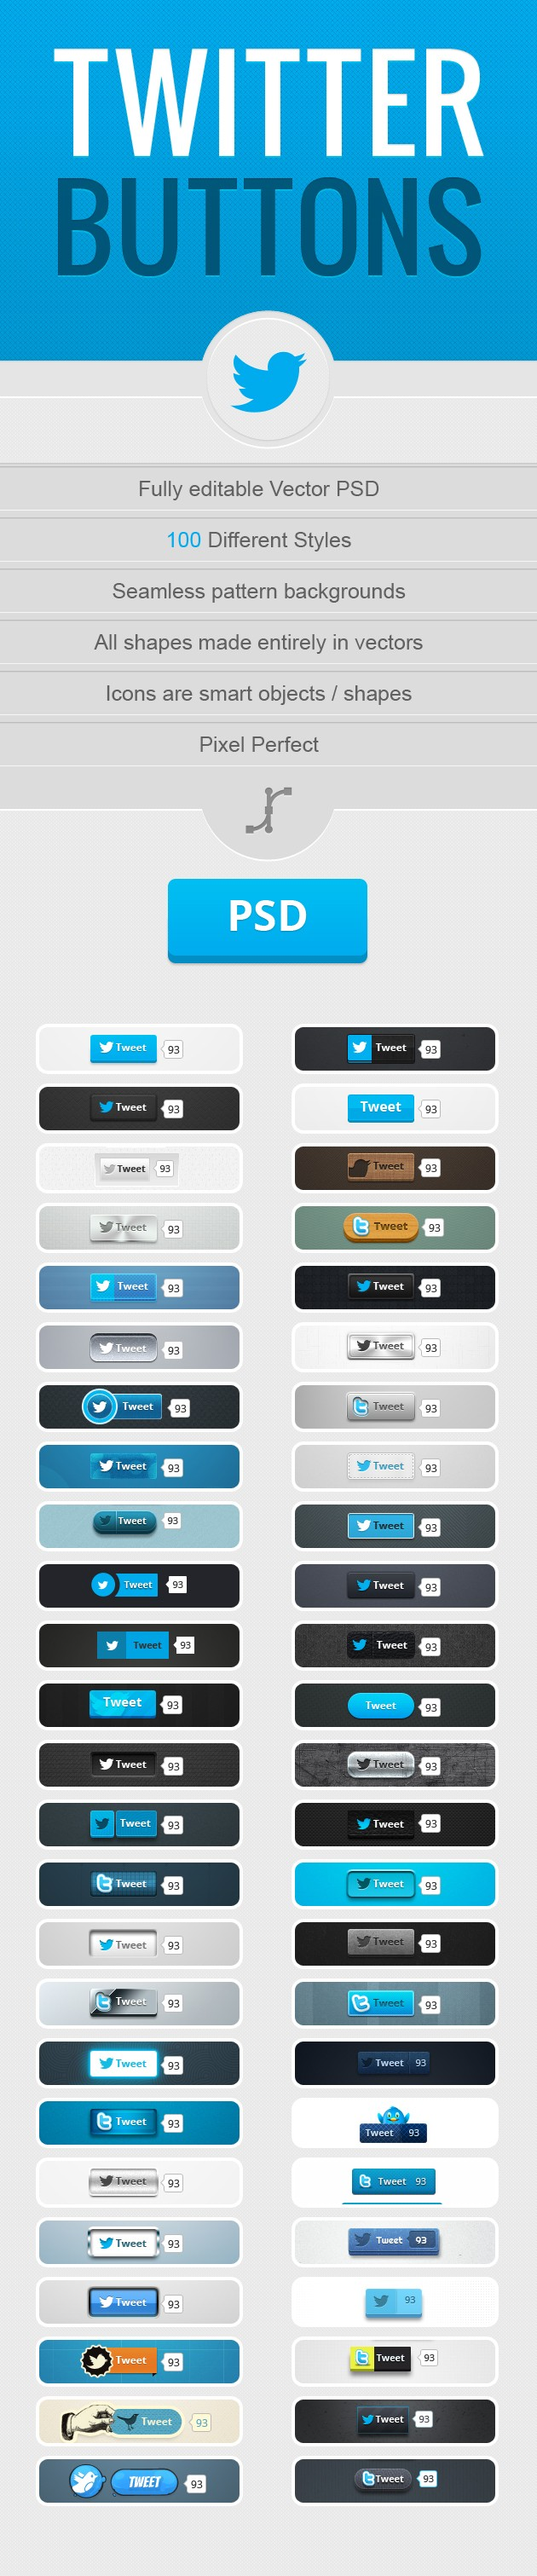 INTRO-Twitter-Buttons